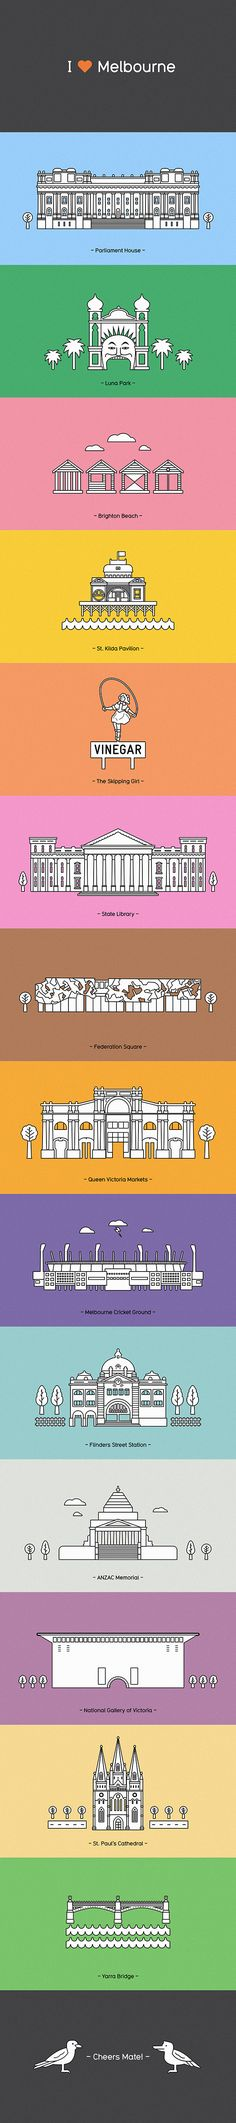 I Love Melbourne by Joao Peres, via Behance